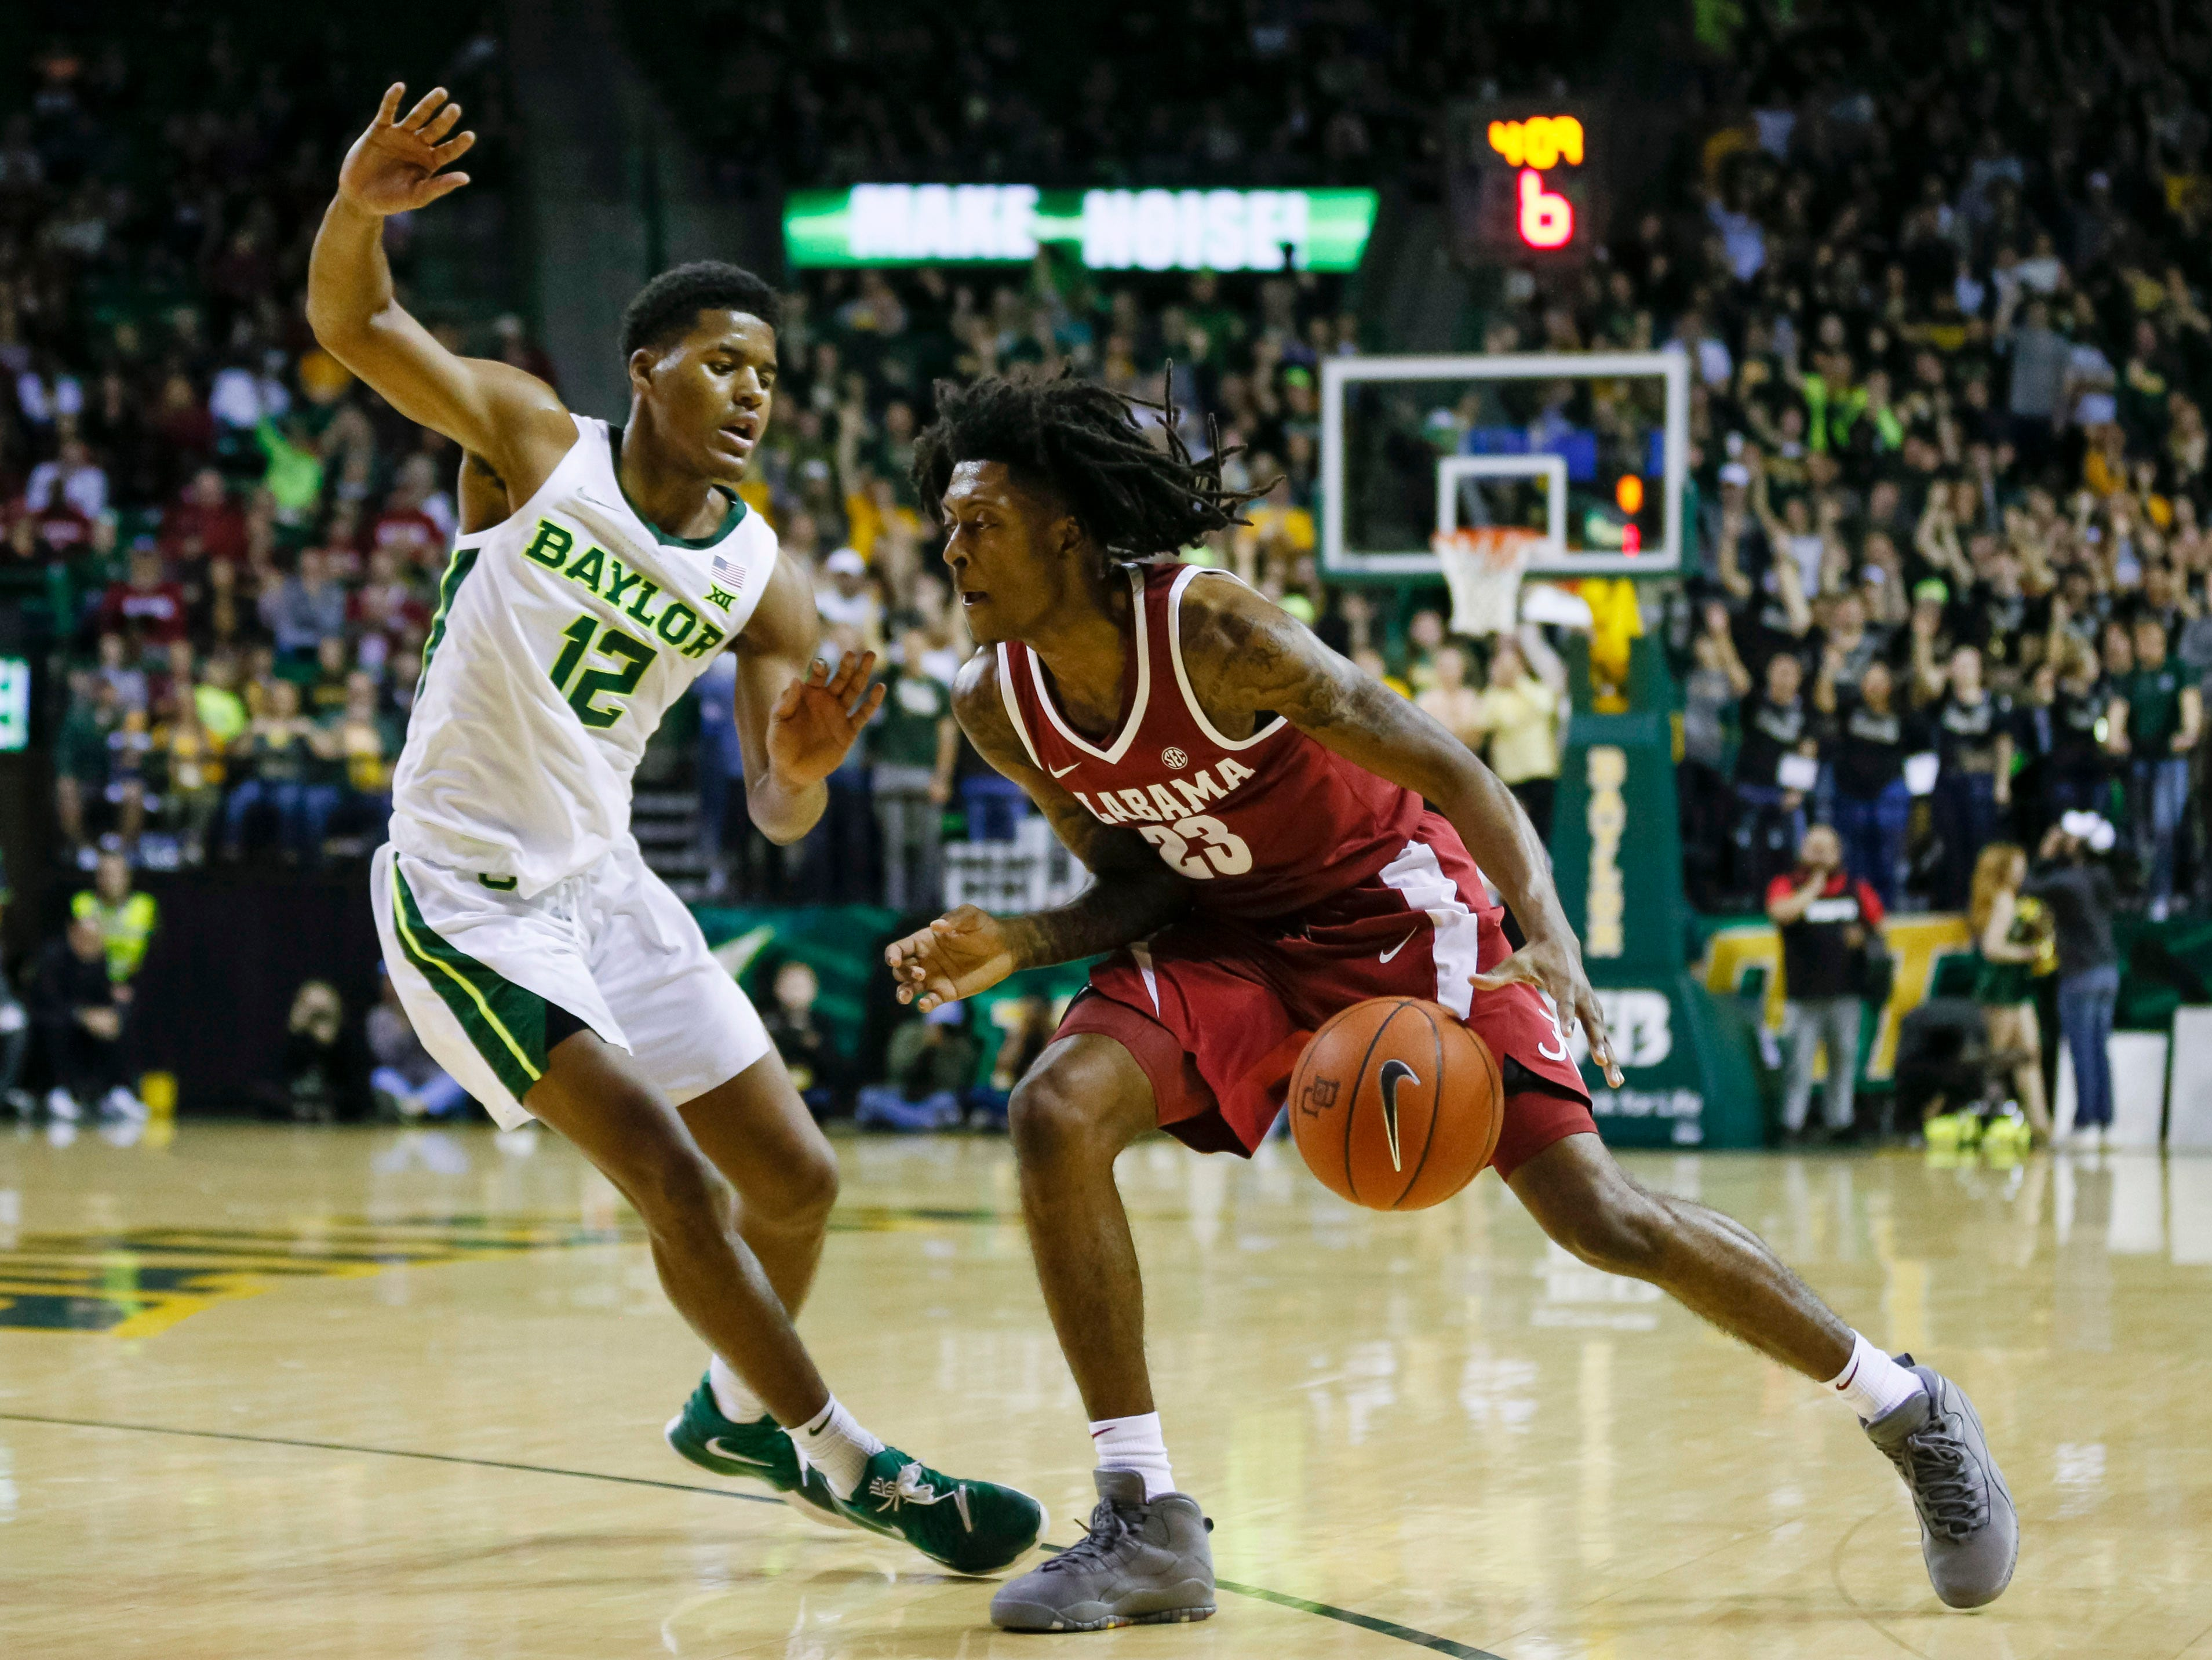 Jan 26, 2019; Waco, TX, USA; Alabama Crimson Tide guard John Petty (23) dribbles the ball as Baylor Bears guard Jared Butler (12) defends during the first half at Ferrell Center. Mandatory Credit: Ray Carlin-USA TODAY Sports